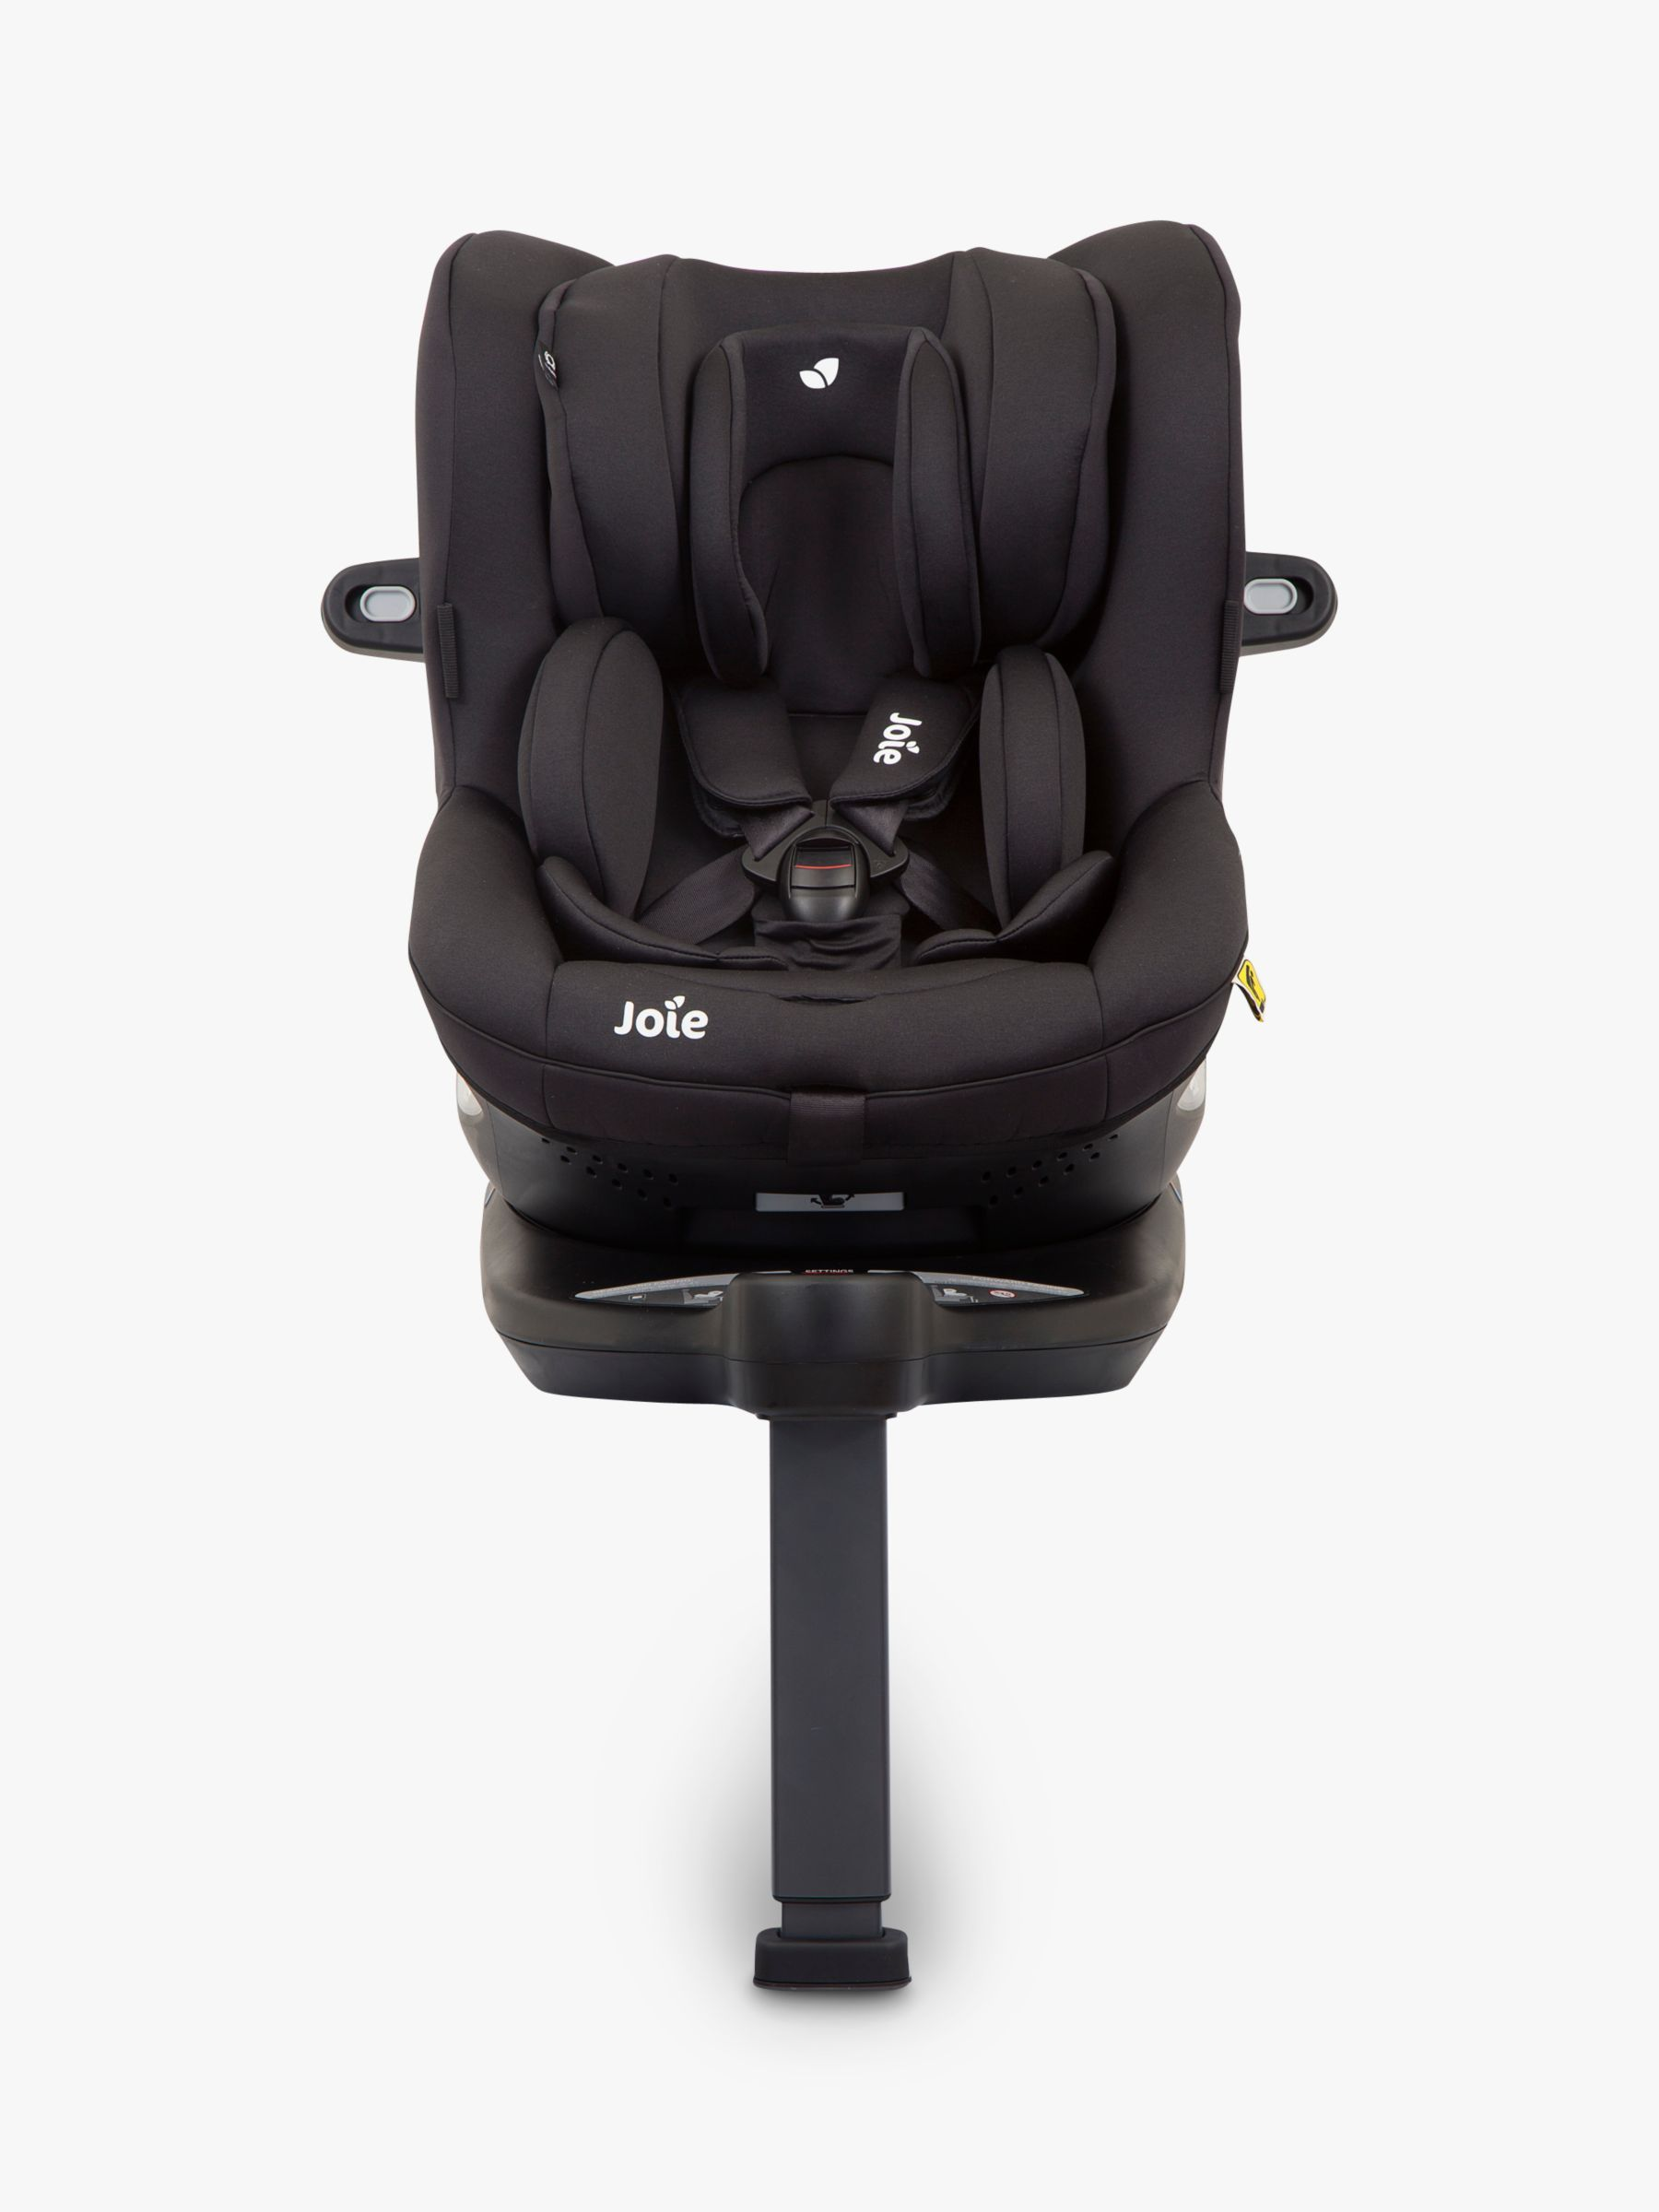 Joie iSpin 360 Group 0+/1 iSize Car Seat, Coal Car